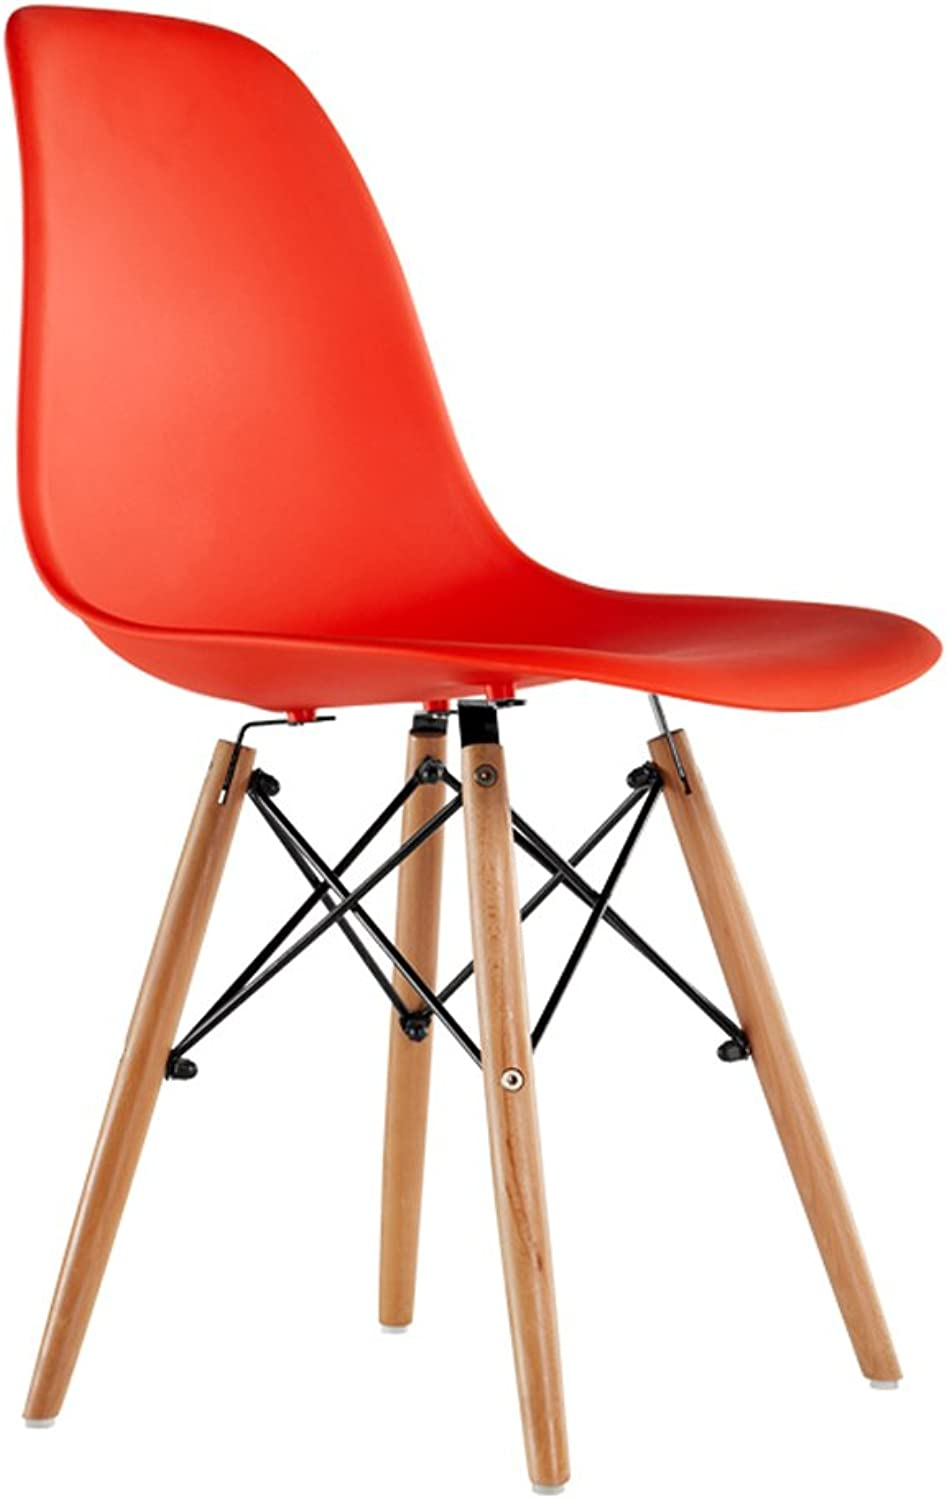 Creative Wood Chair Nordic Modern Minimalist Dining Chair Leisure Negotiation Table and Chair (color   Red)